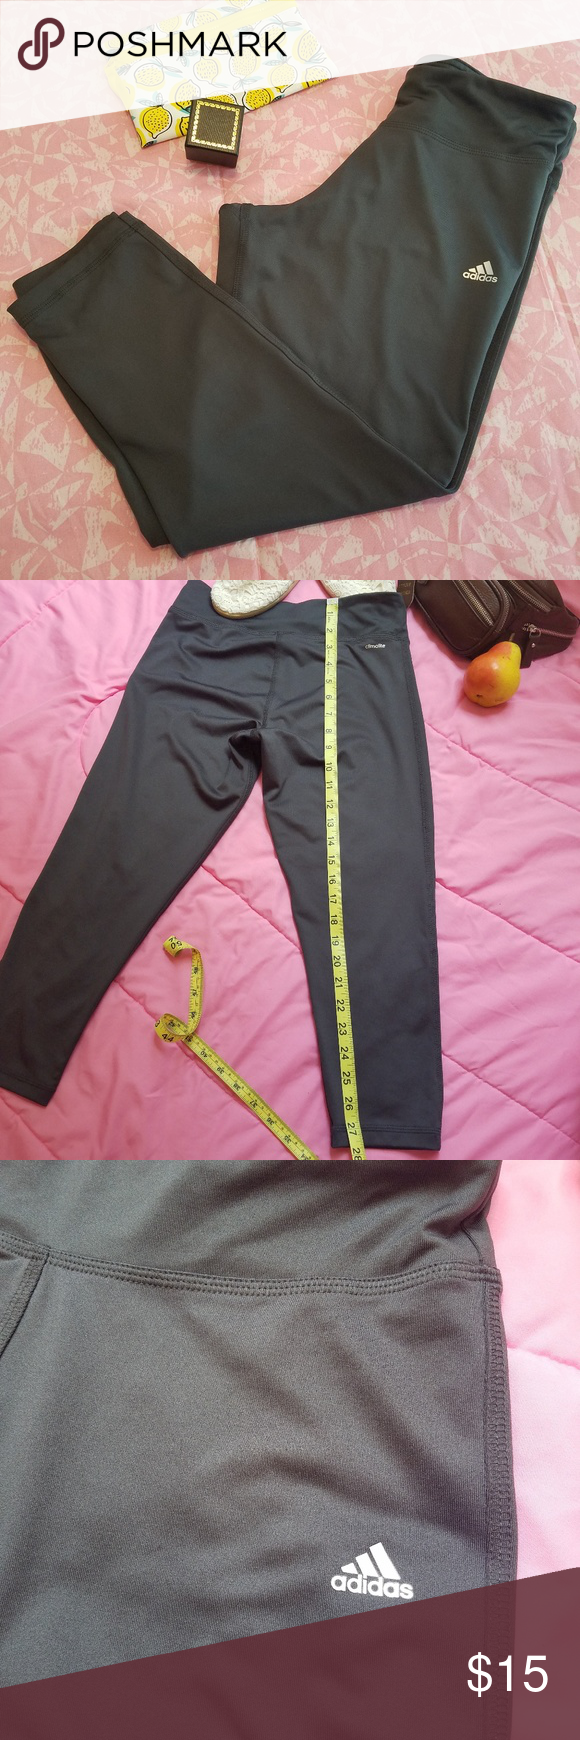 adidas leggings 11-12